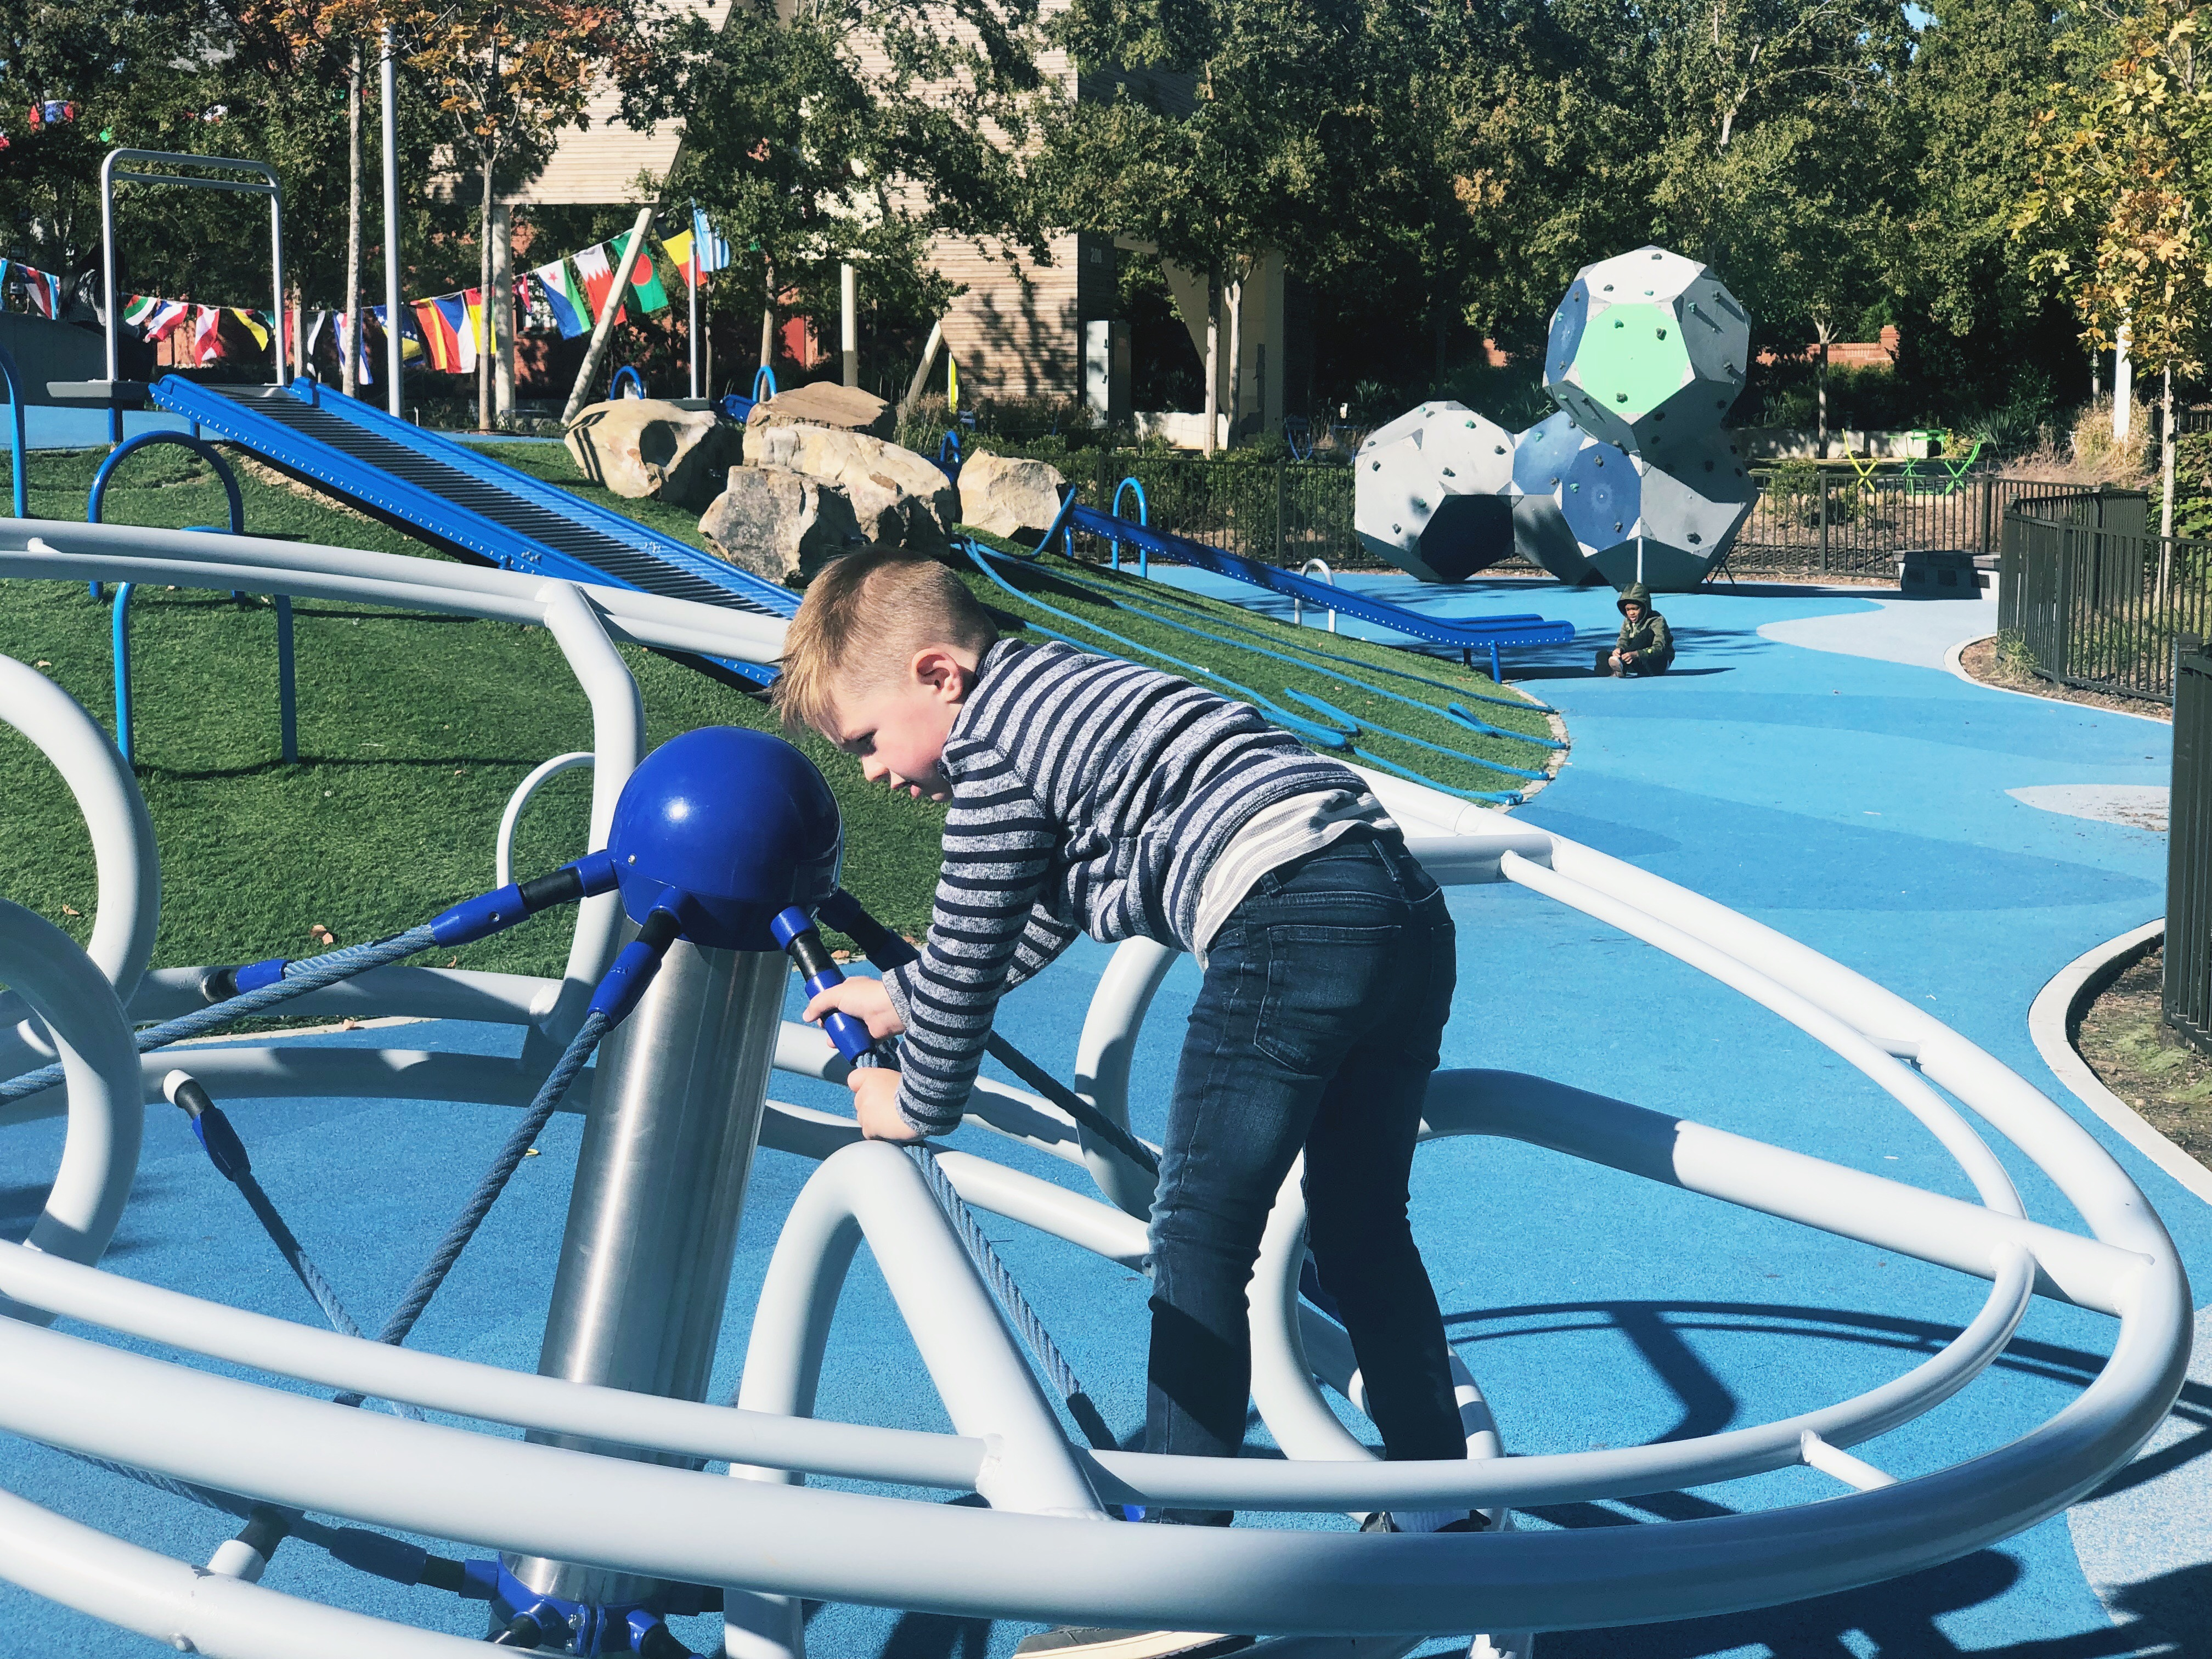 Playground Near Me- Inclusive Playgrounds for All Kids to Enjoy the Benefits of Play